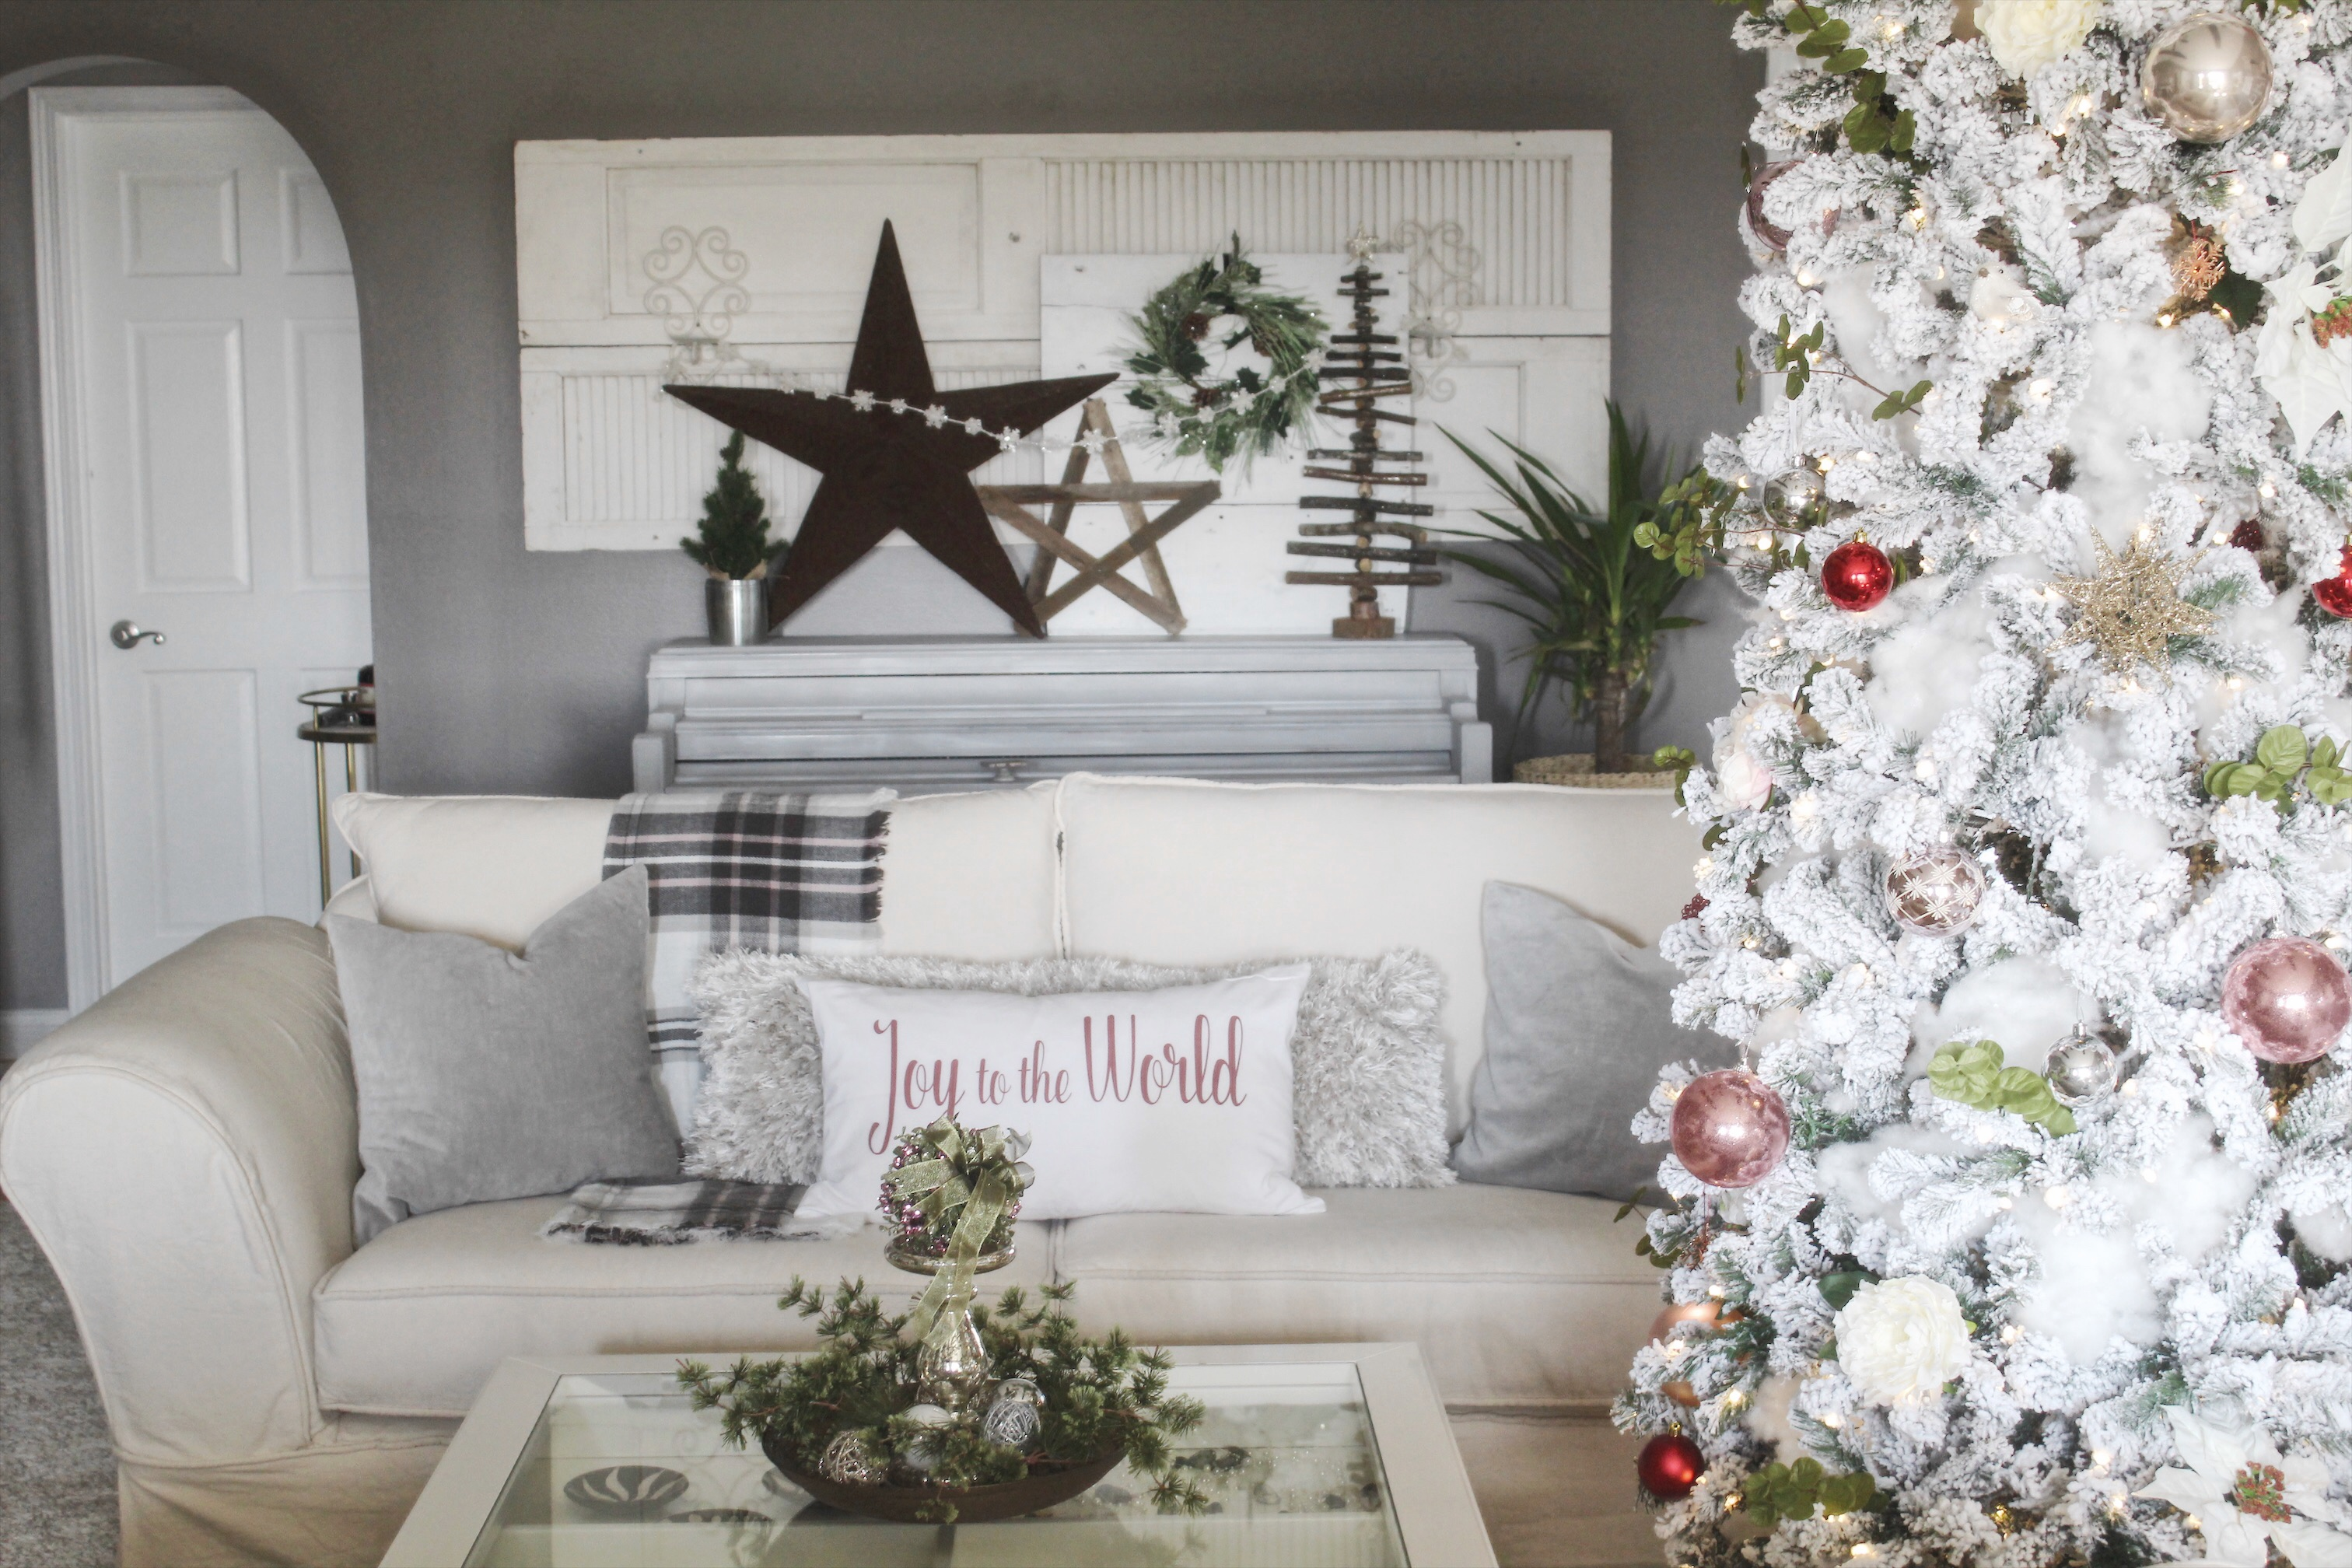 Christmas decor for open shelf in living room